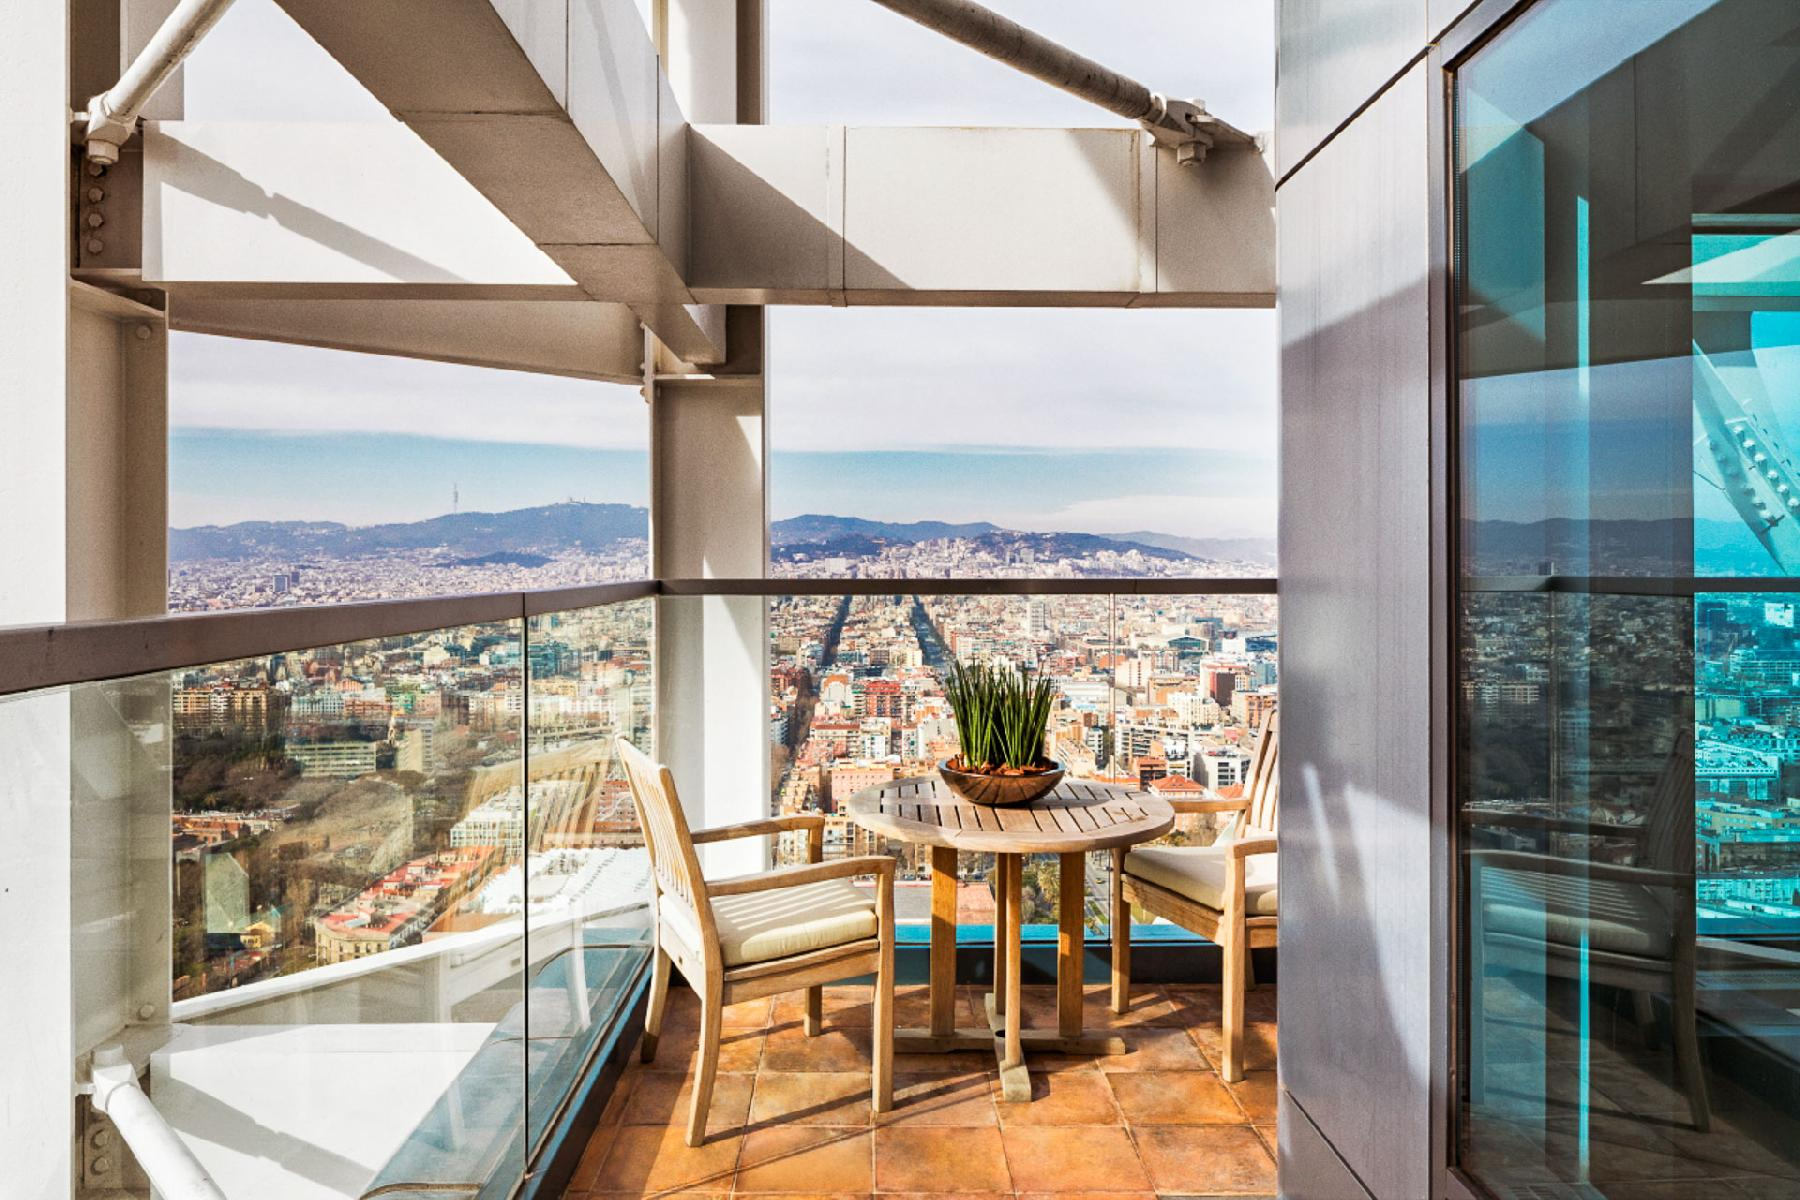 amazing Arts Barcelona - The Barcelona Penthouse luxury apartment and holiday home